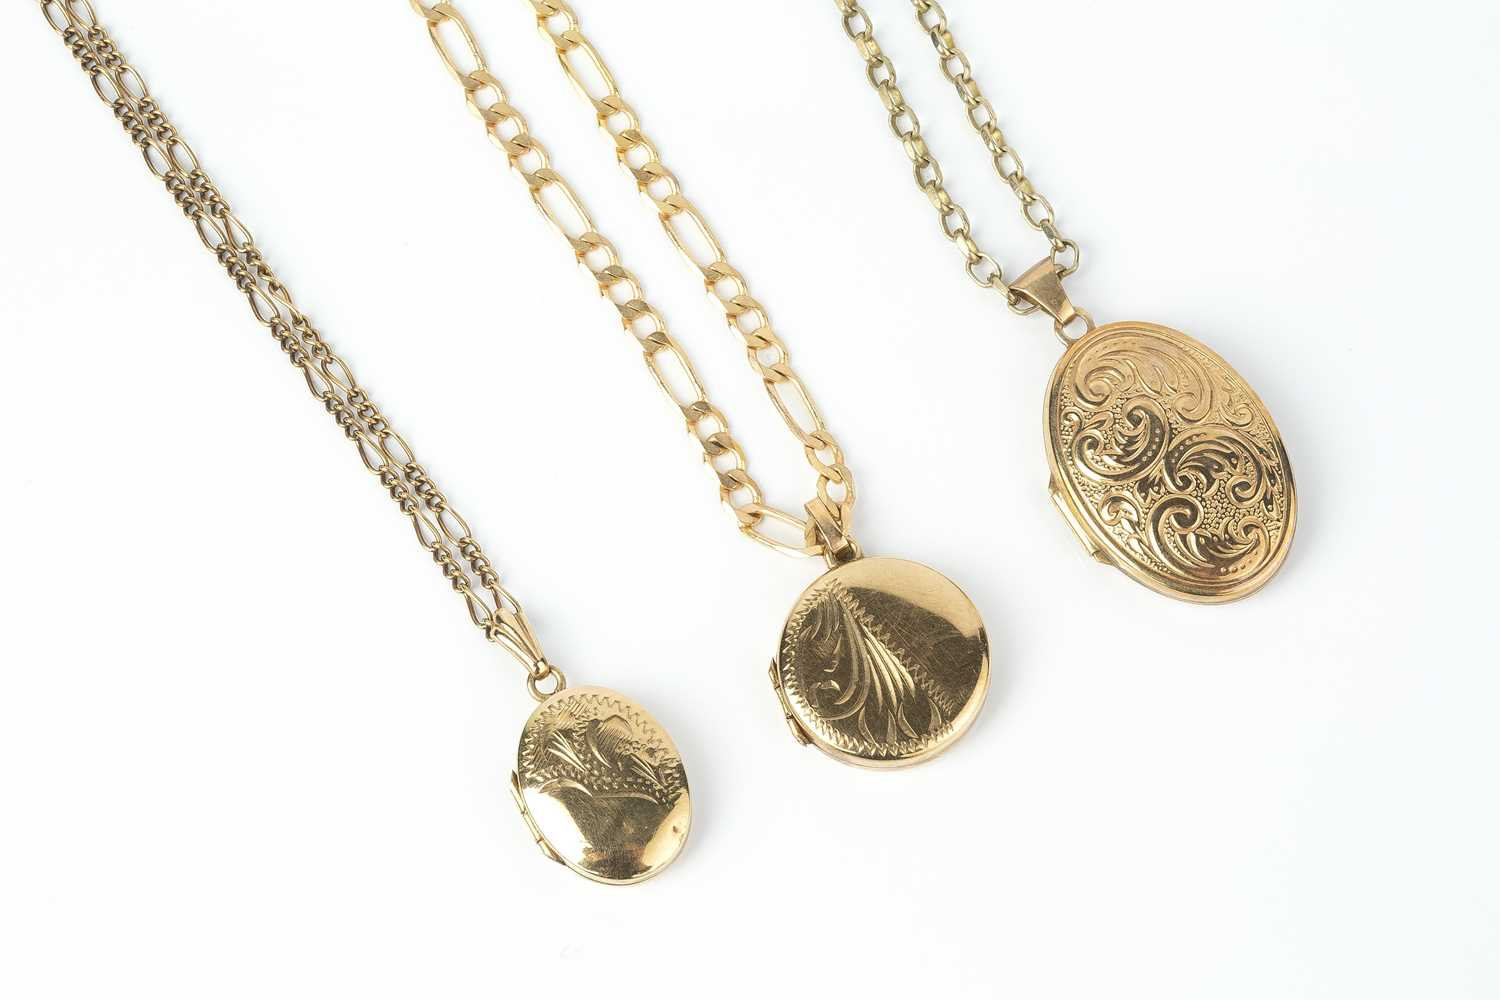 Three locket pendants on chains, comprising a 9ct gold circular locket pendant, with engraved